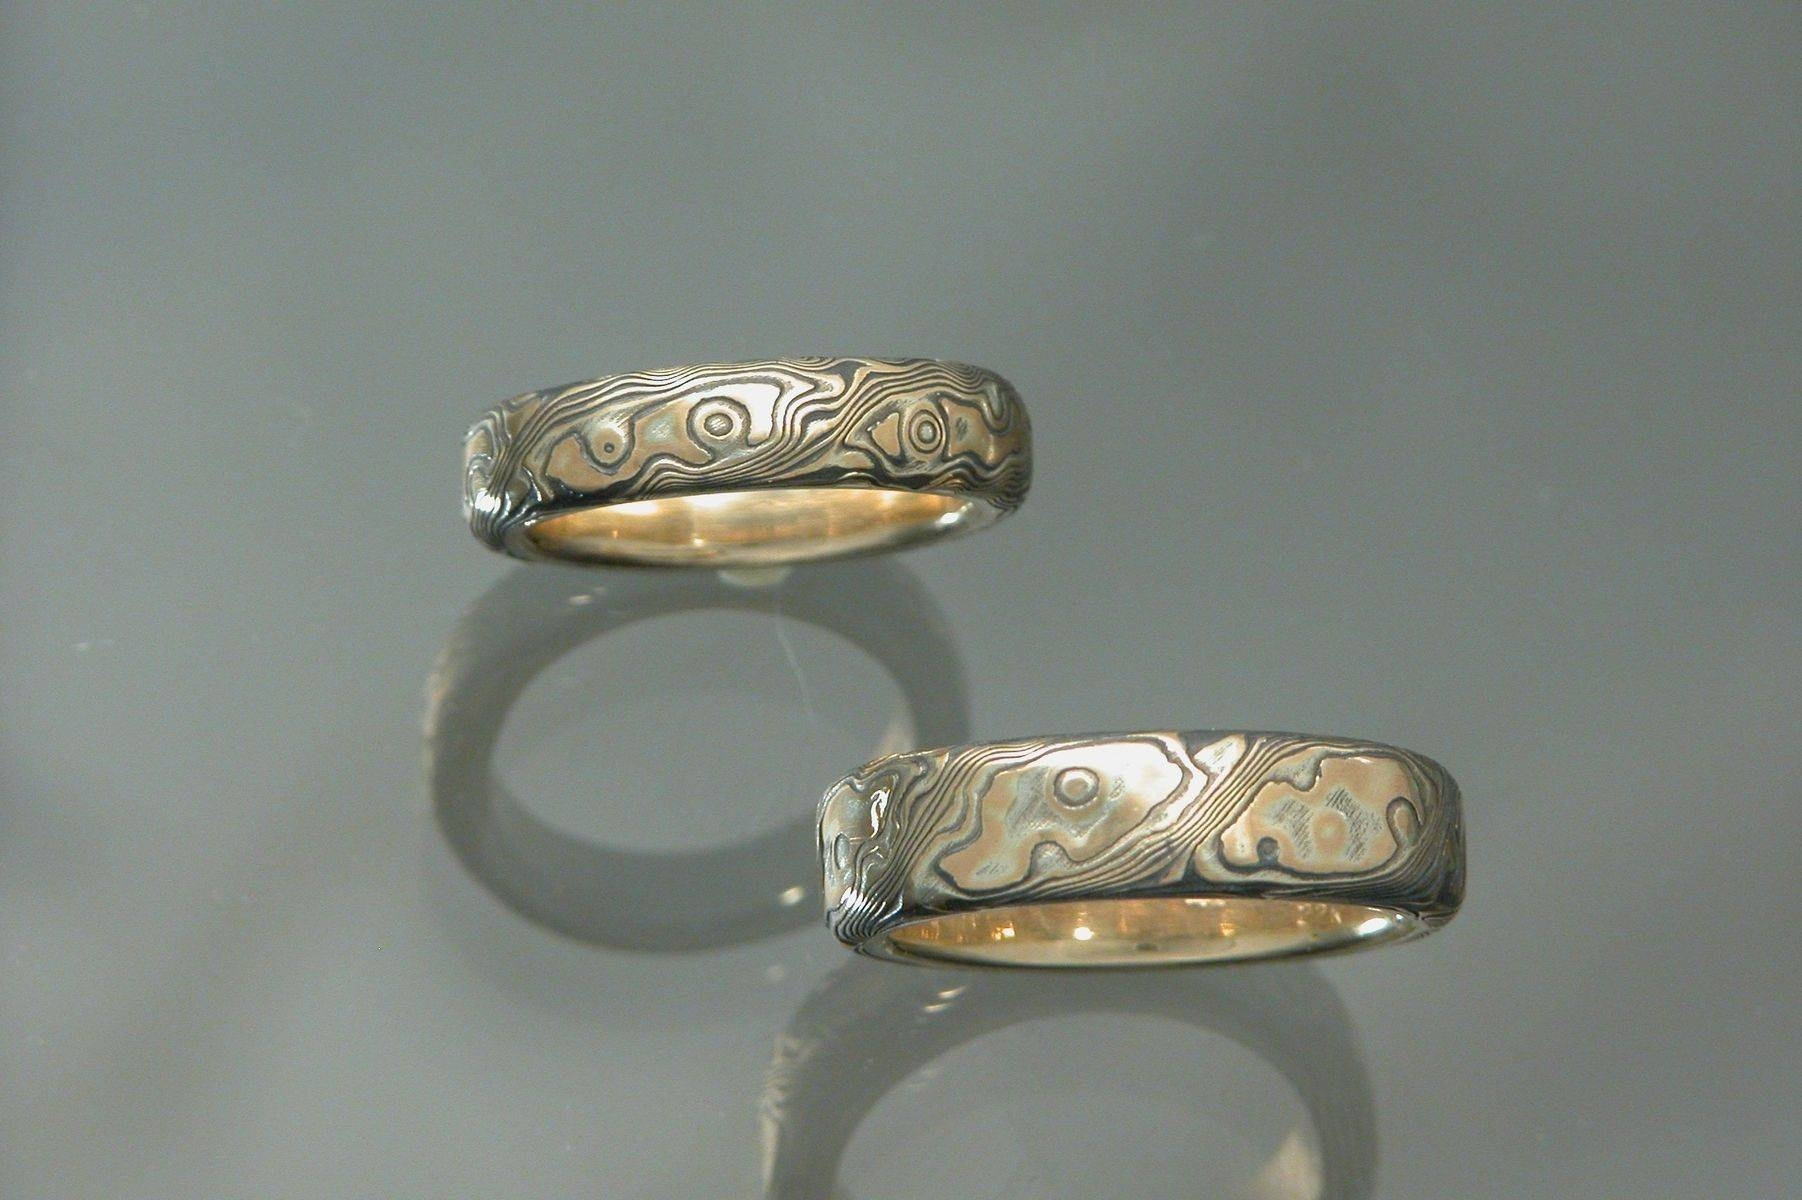 15 Photo of Mokume Gane Wedding Rings